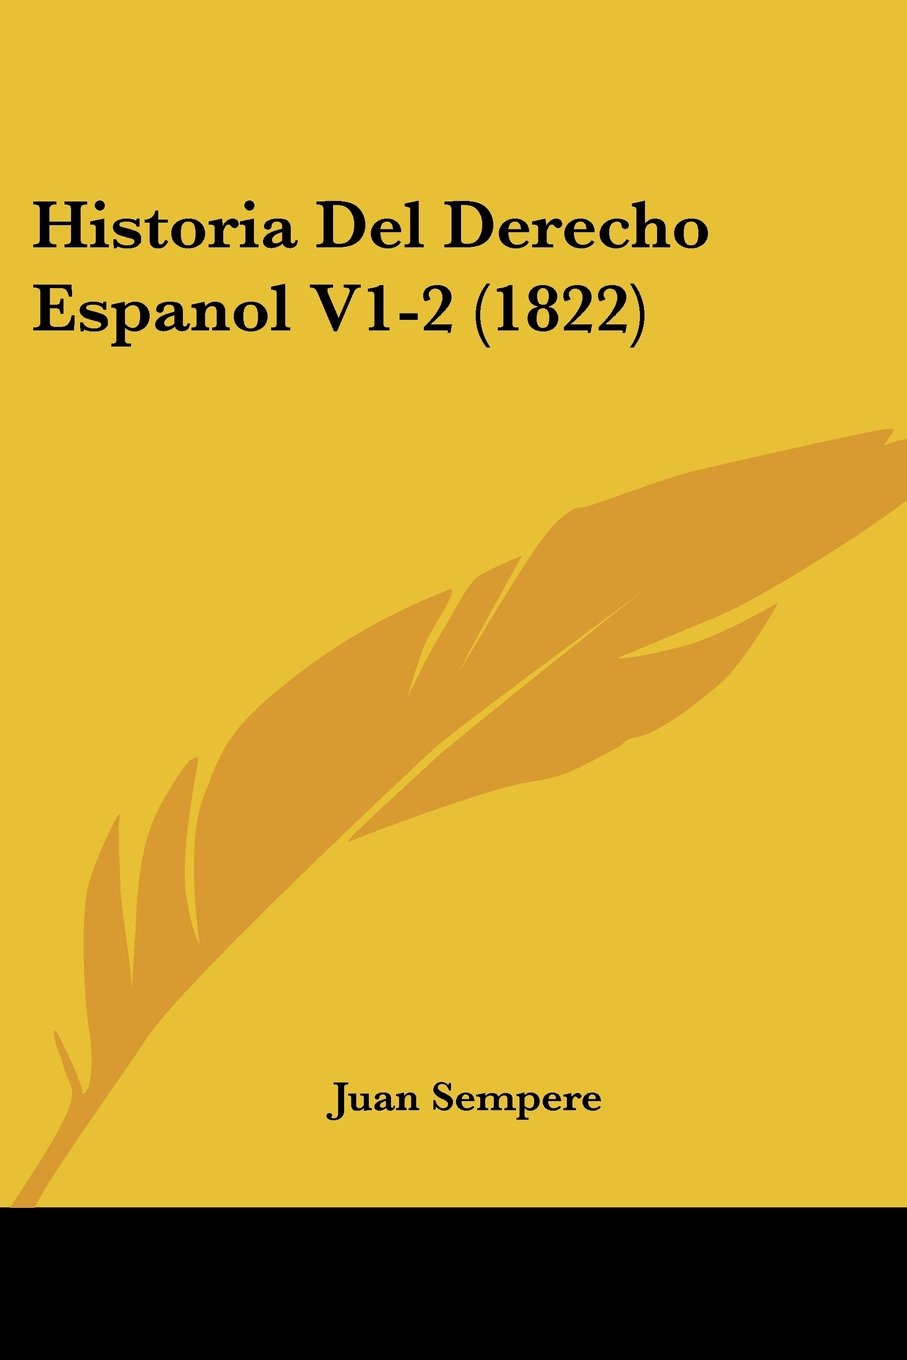 Download Historia Del Derecho Espanol V1-2 (1822) (Spanish Edition) ebook